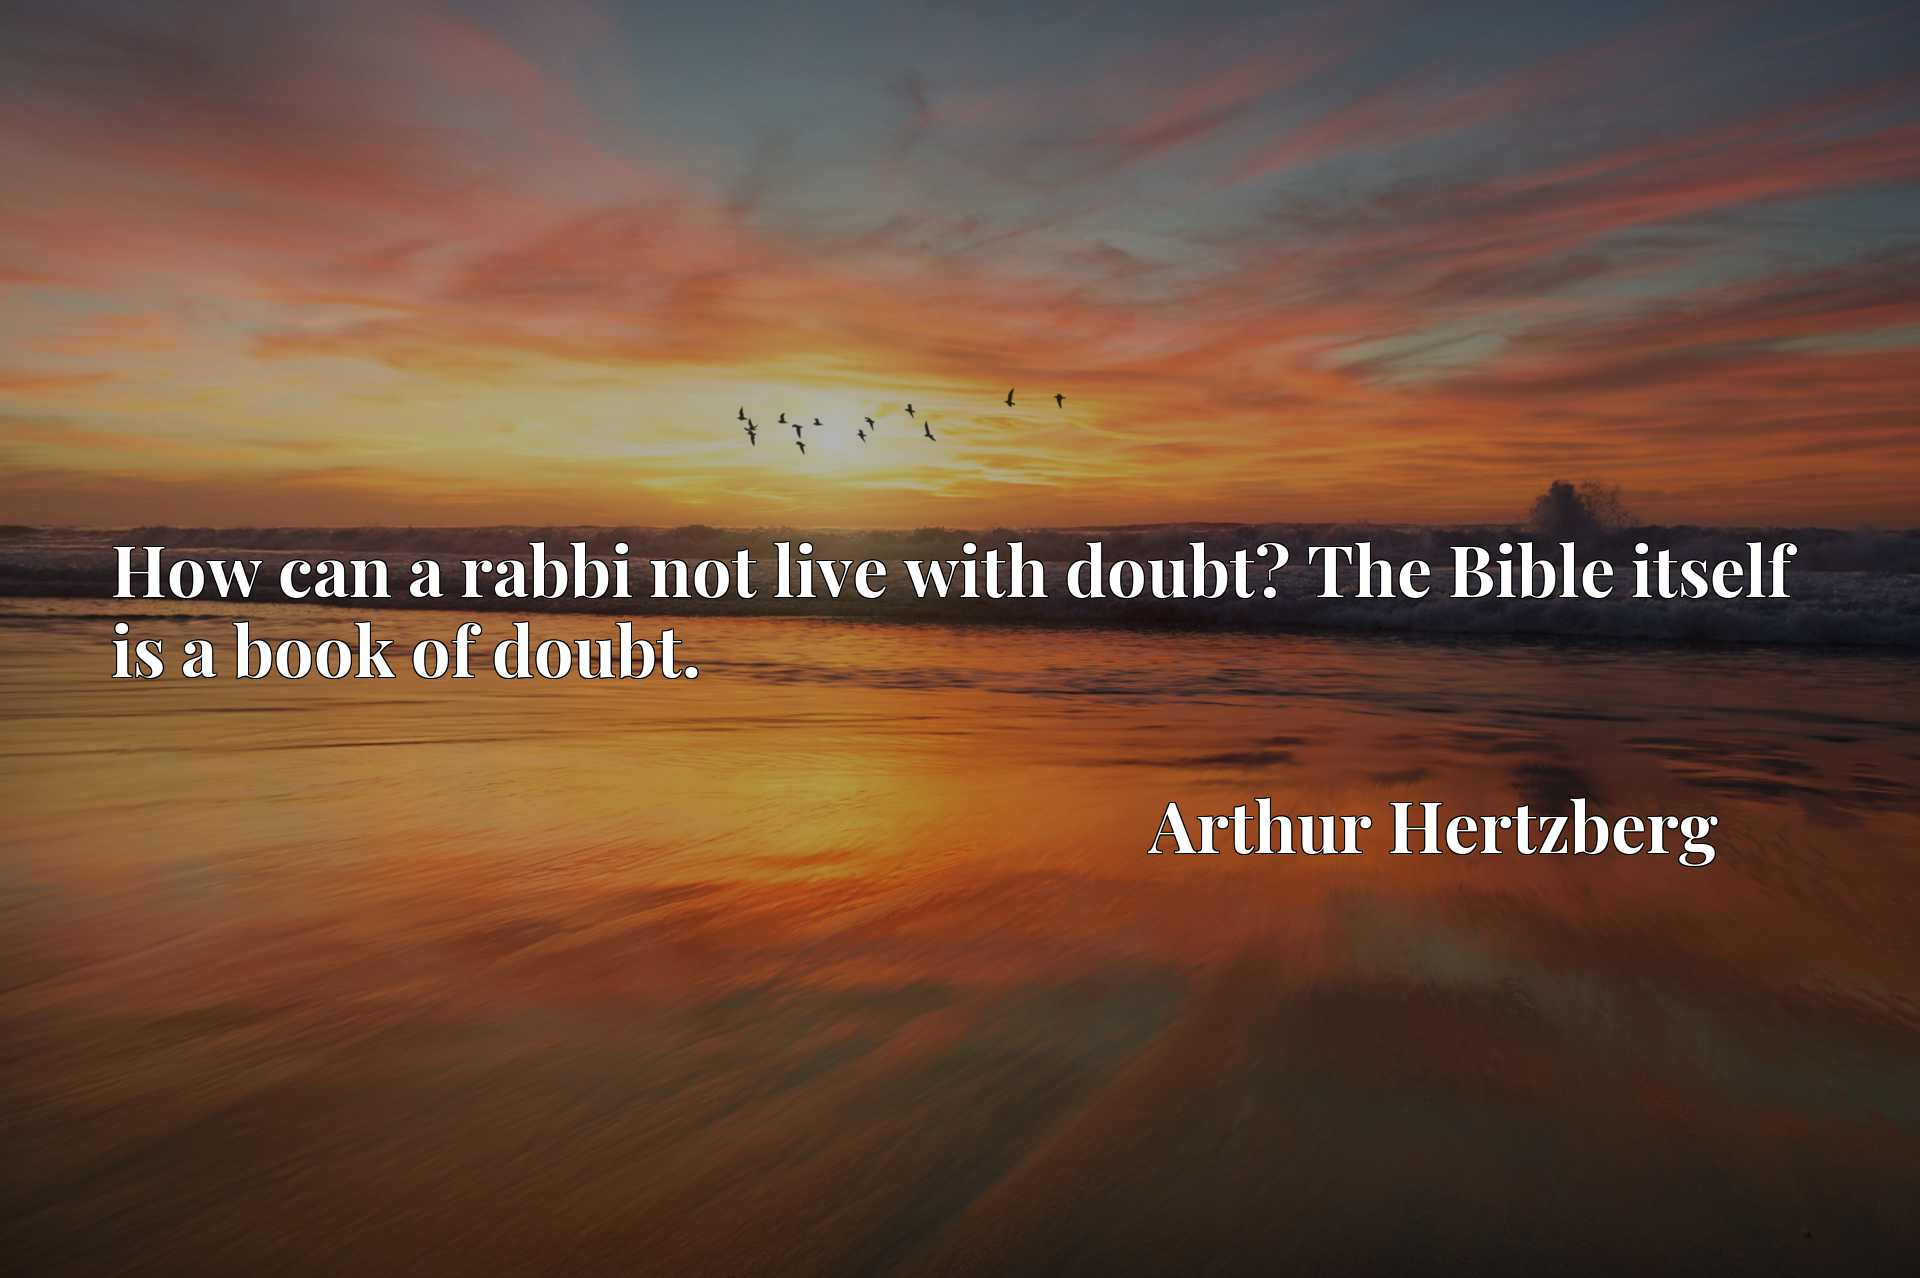 How can a rabbi not live with doubt? The Bible itself is a book of doubt.